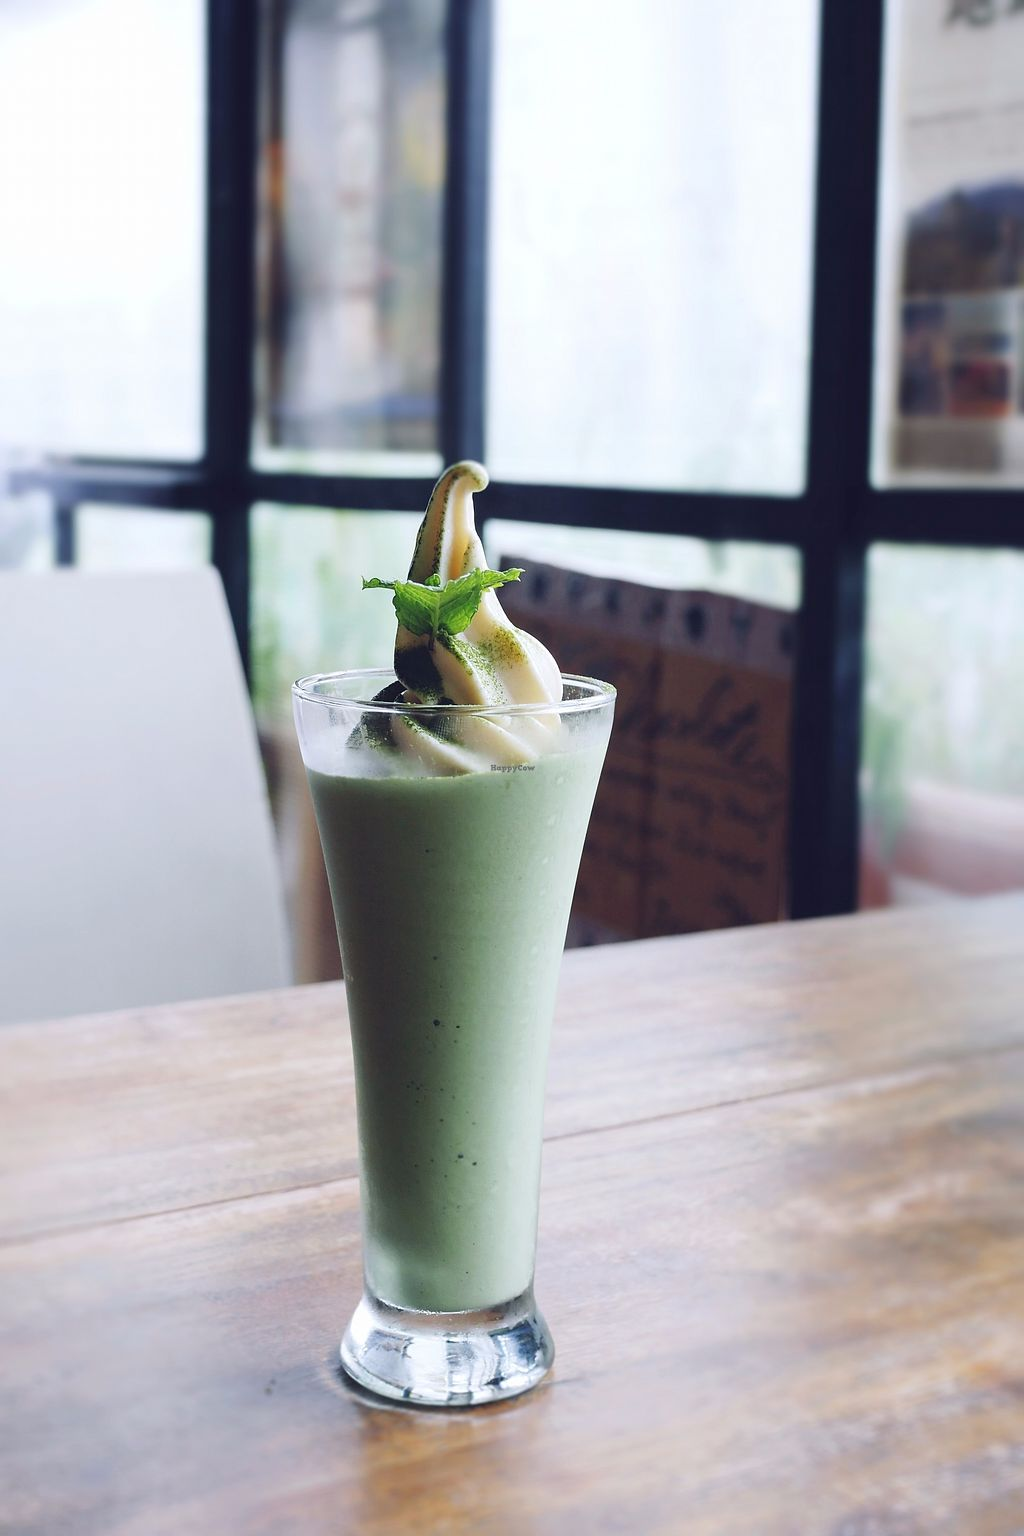 """Photo of Vegans Cafe and Restaurant  by <a href=""""/members/profile/YukiLim"""">YukiLim</a> <br/>Matcha ice cream shake <br/> July 15, 2017  - <a href='/contact/abuse/image/29114/280672'>Report</a>"""